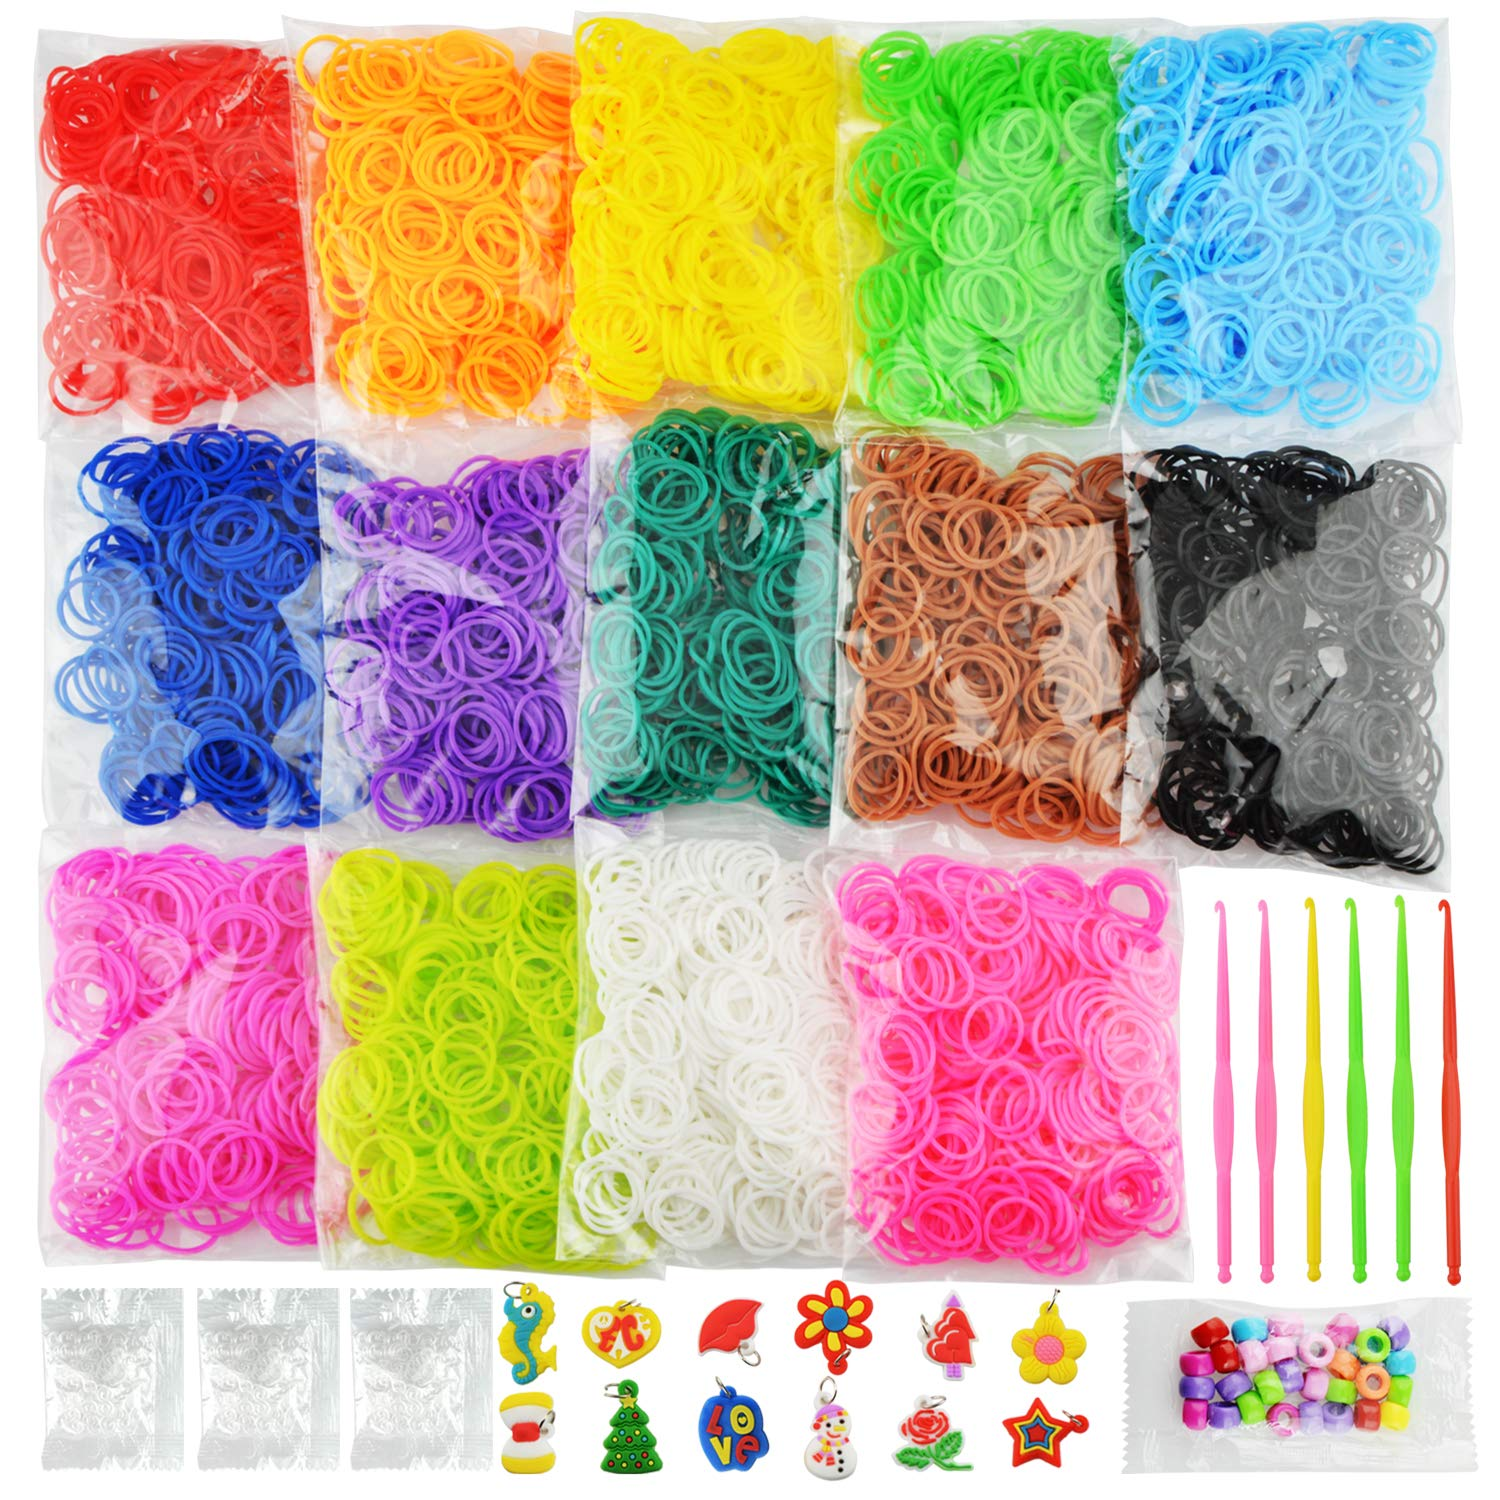 6900+ New Rubber Bands Bracelet Kit, 2021 New Loom Bands in 14 Colors- Great Gift for Handicraft Lovers & Kids. No Loom Board Included